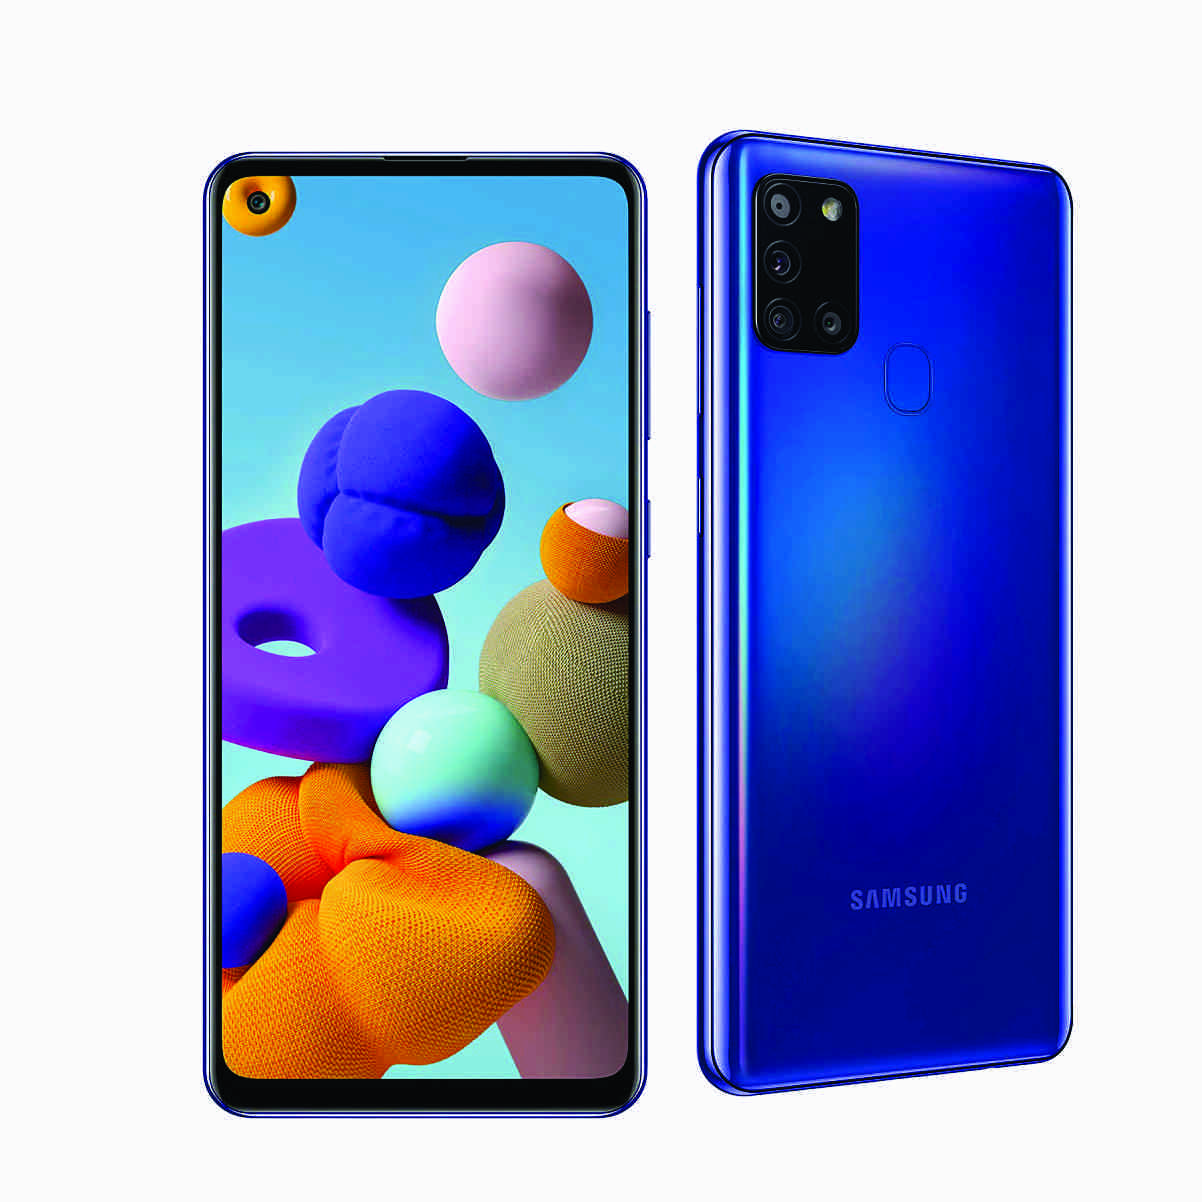 MOBILE PHONE SAMSUNG 6.5 OCTA CORE 2.0GHZ 4GB 64GB DUAL SIM GALAXY A21S - BLUE ,Android Smartphone